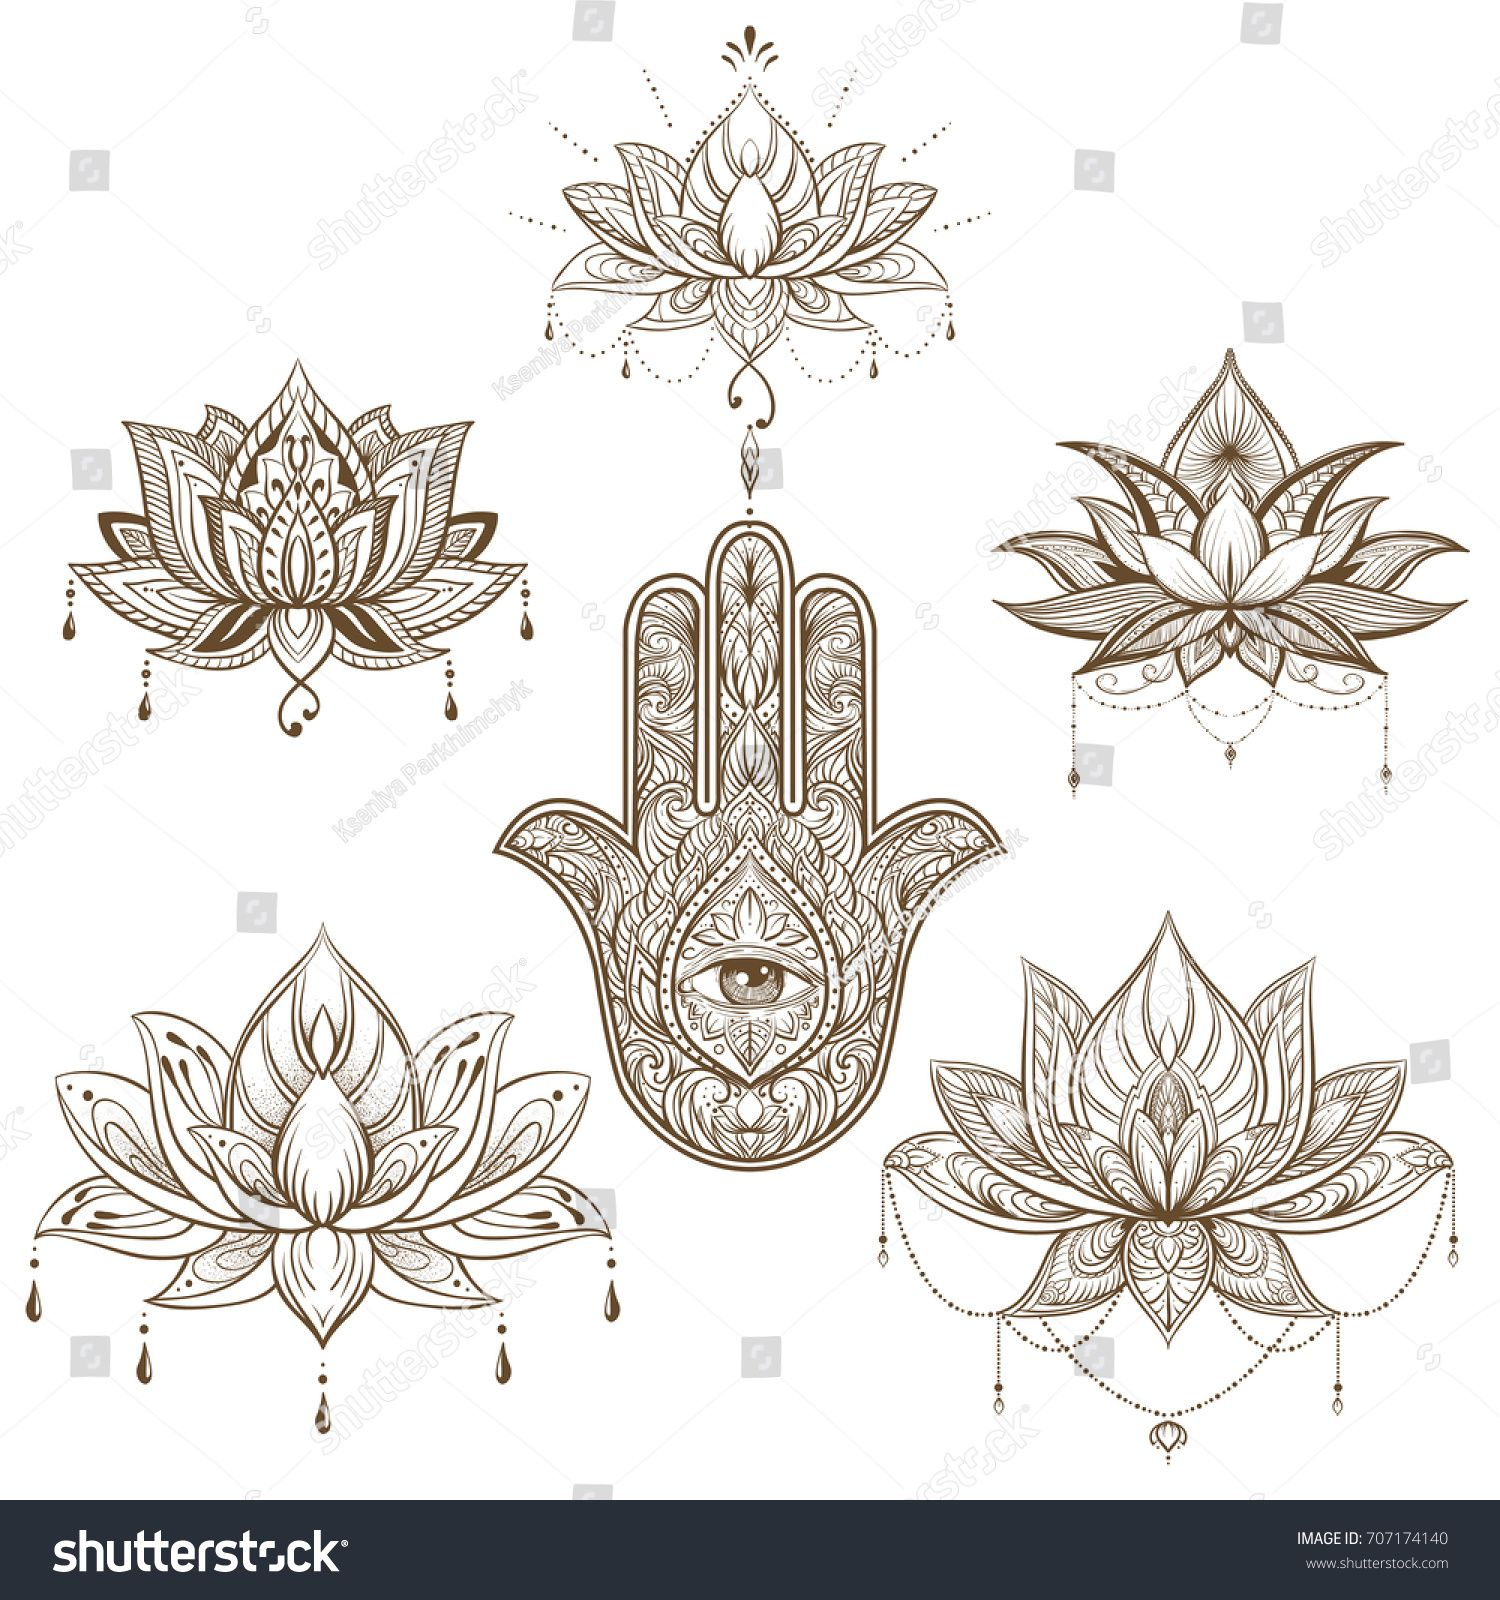 Lotus fllower und Hamsa Set. Vektorgrafik. Stock-Vektorgrafik (Lizenzfrei) 707174140 #lotusflower